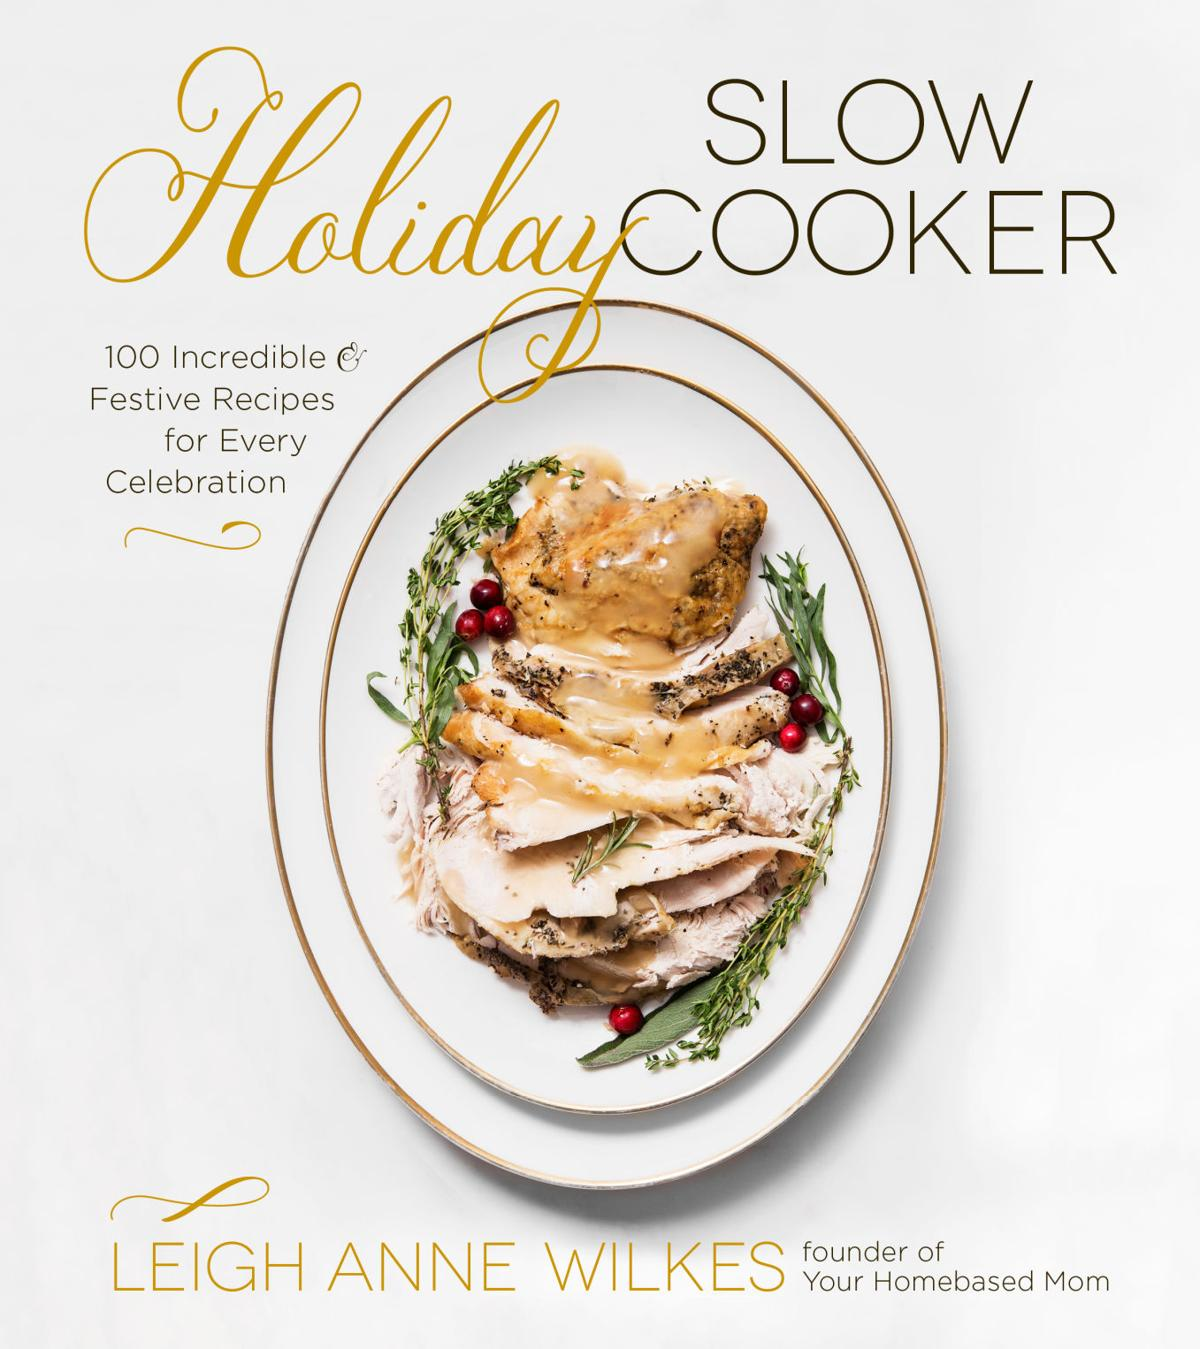 Holiday Slow Cooker (1).jpg